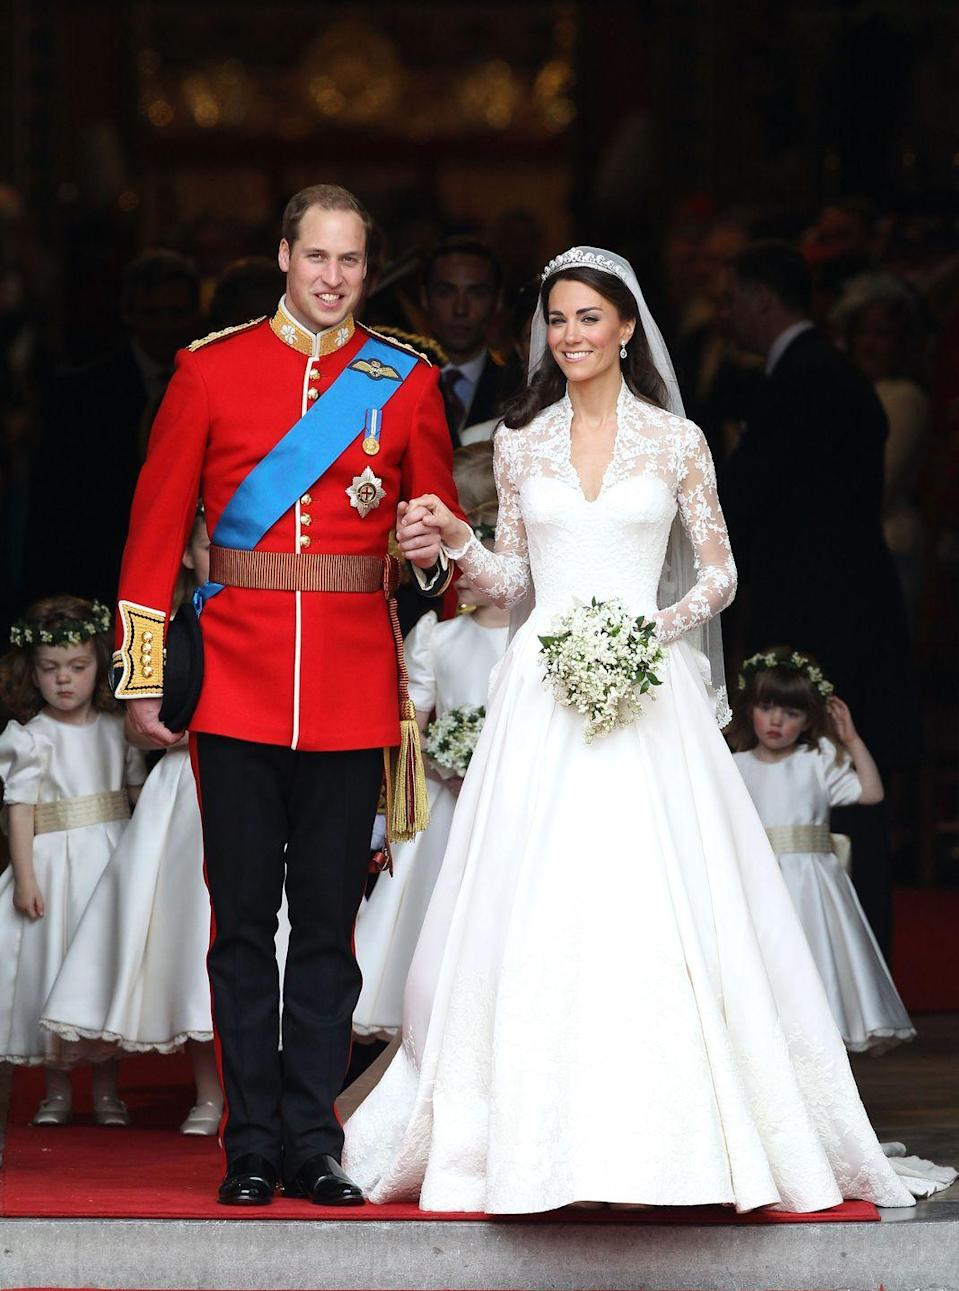 <p>The couple made their first appearance as husband and wife in the doorway of Westminster Abbey.</p><p>The day after their wedding, the couple left Buckingham Palace via helicopter to head to their honeymoon, which took place on private island in the Seychelles.</p>